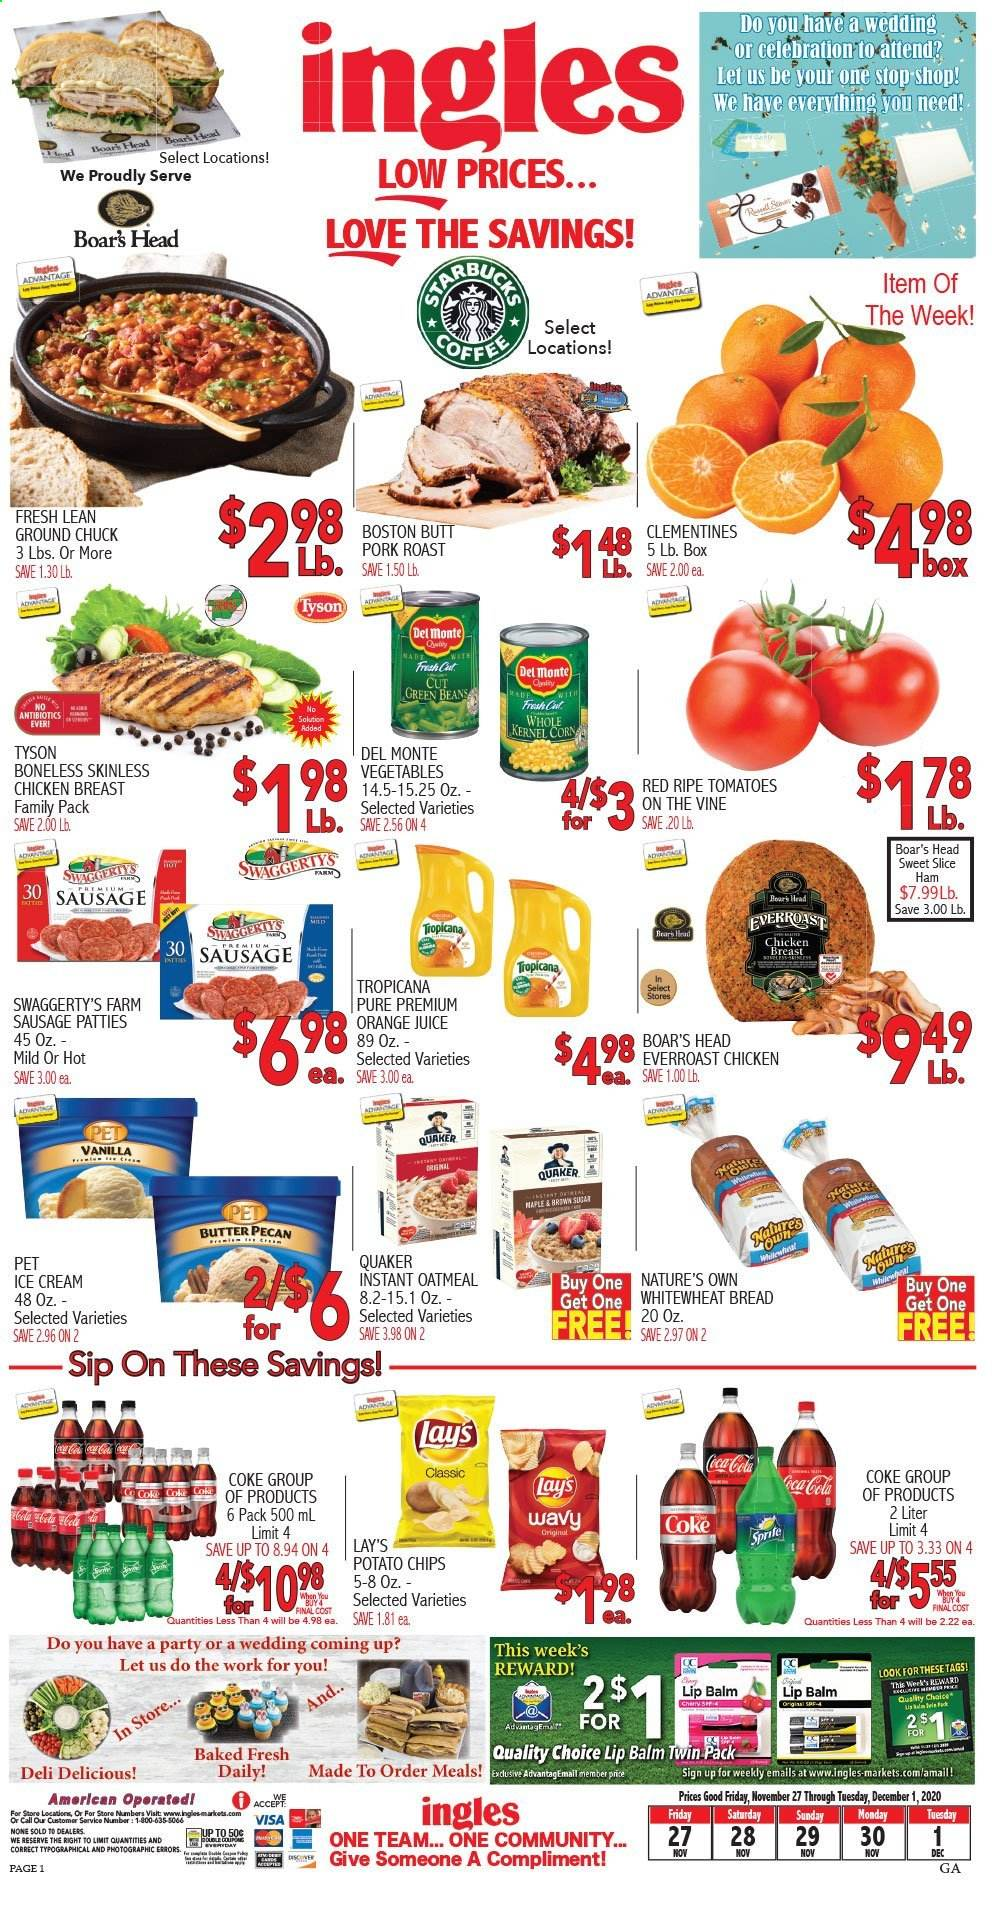 Ingles Flyer - 11.27.2020 - 12.01.2020 - Sales products - beans, box, bread, clementines, coca-cola, corn, green beans, ground chuck, lip balm, sausage, Sprite, tomatoes, ham, ice cream, pork meat, pork roast, chicken, chicken breast, oatmeal, orange juice, orange, juice, Vegetables, Lay's, vegetable. Page 1.